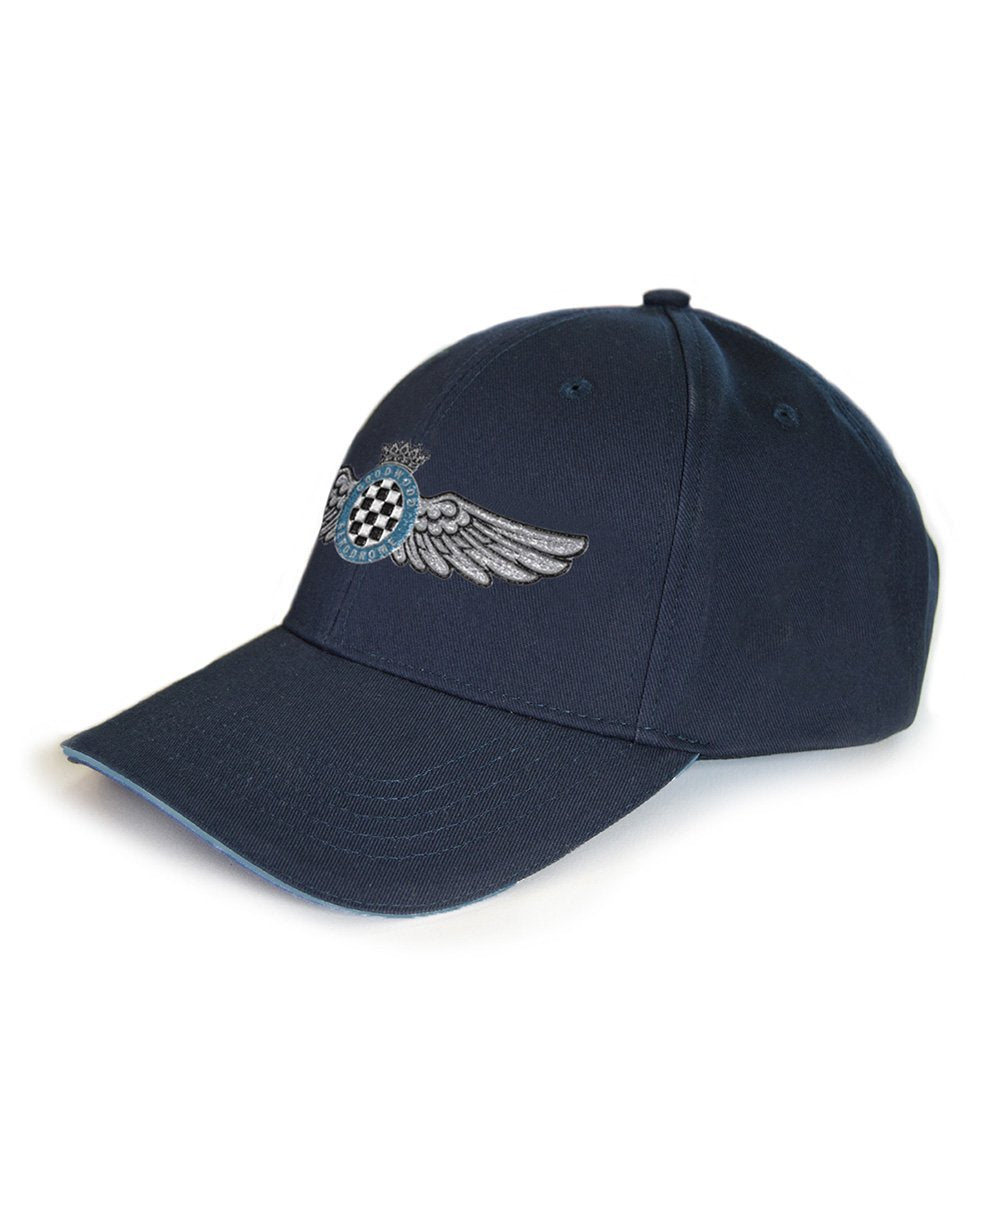 Goodwood Aero Club Cotton Twill Blue Baseball Cap